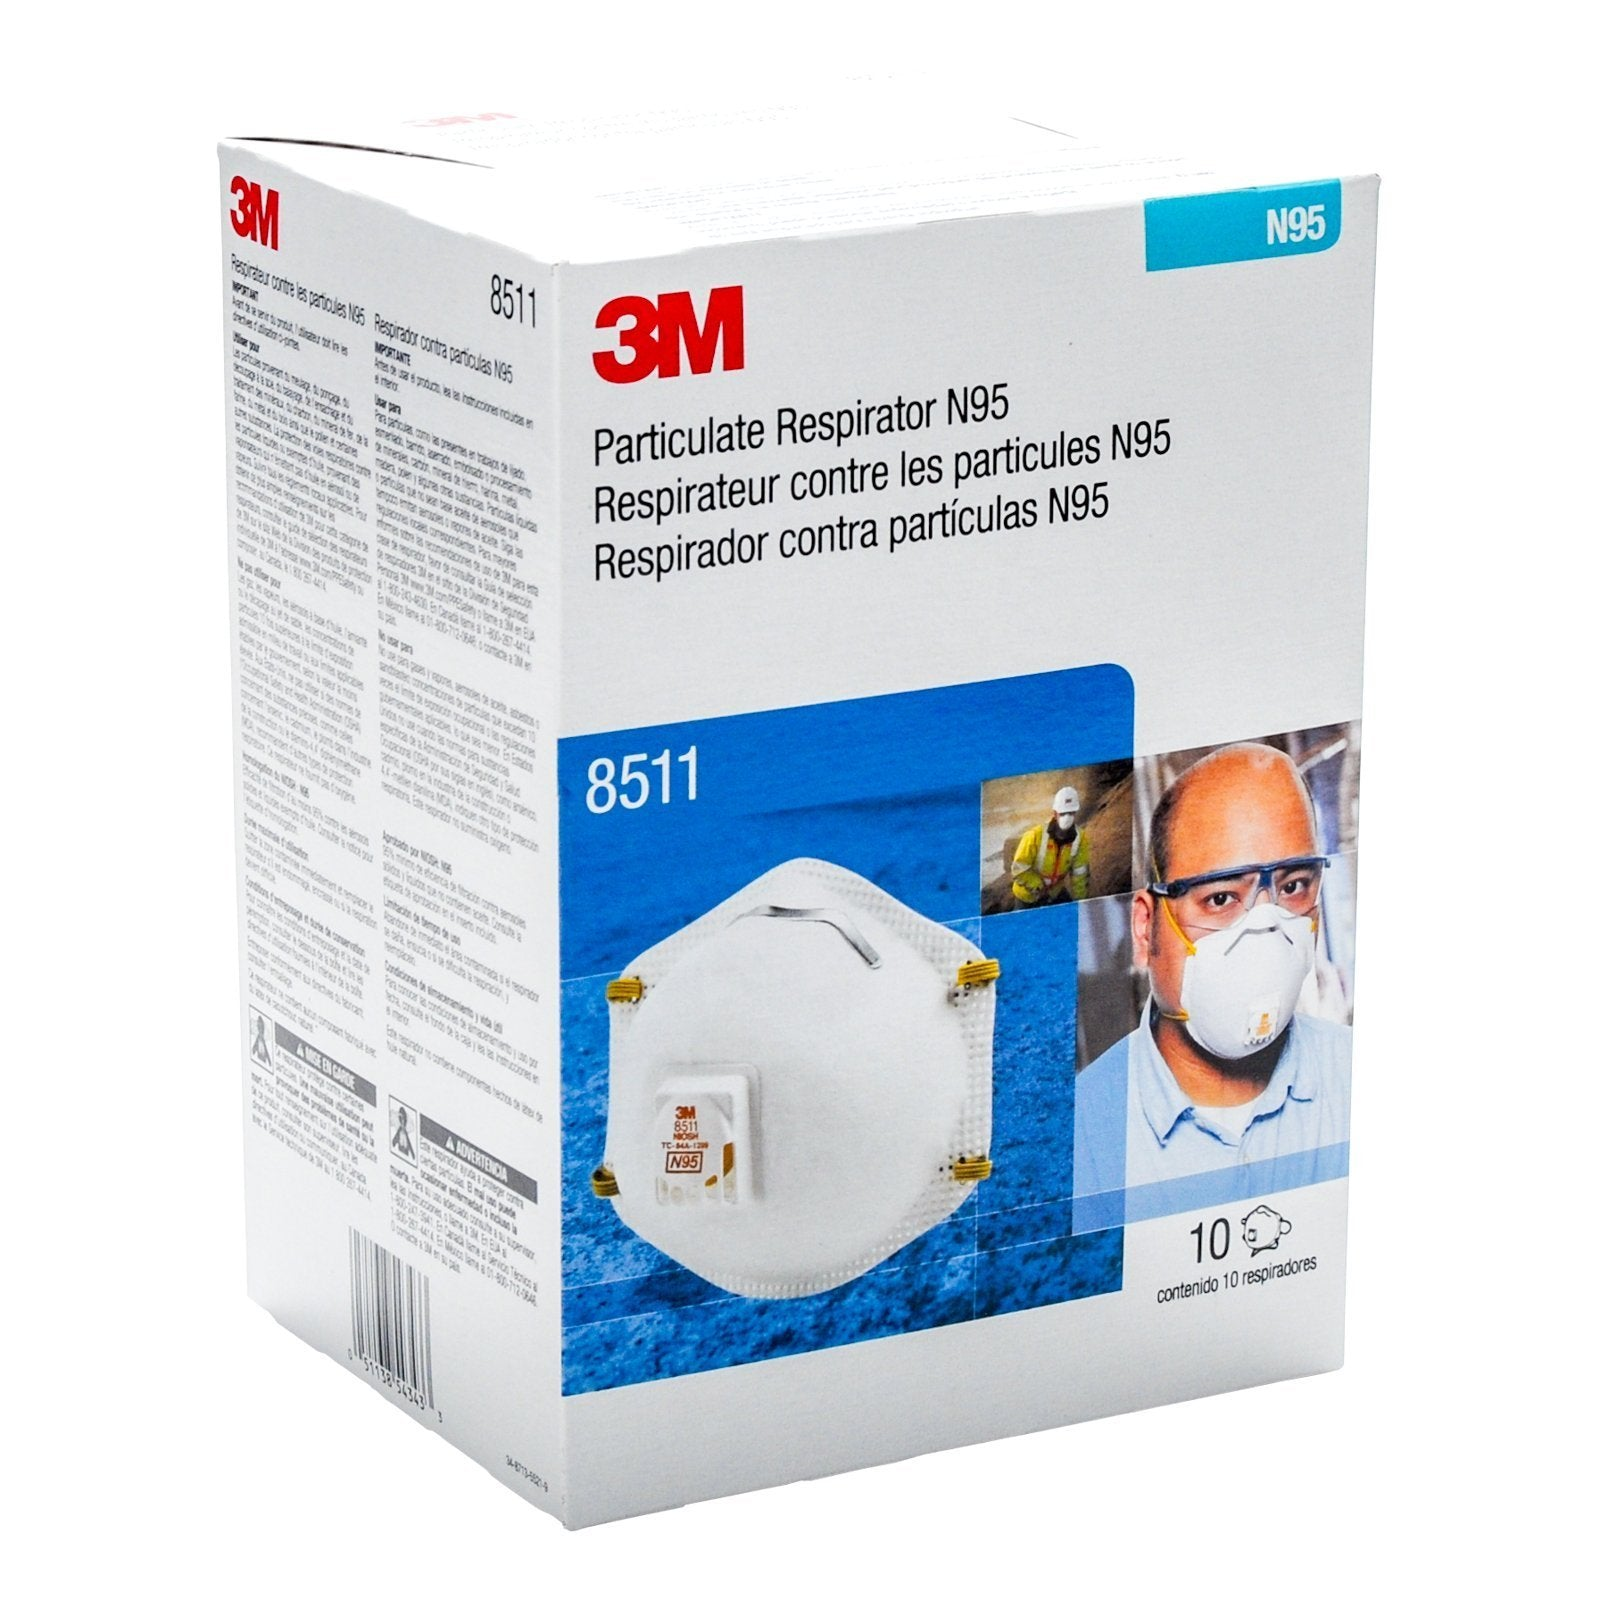 3M®8511 N95 Masks Bundle (Pack of 10) *Also available without sanitizer for additional savings- Please call us at 401-284-4505 for pricing - Bayview Pharmacy